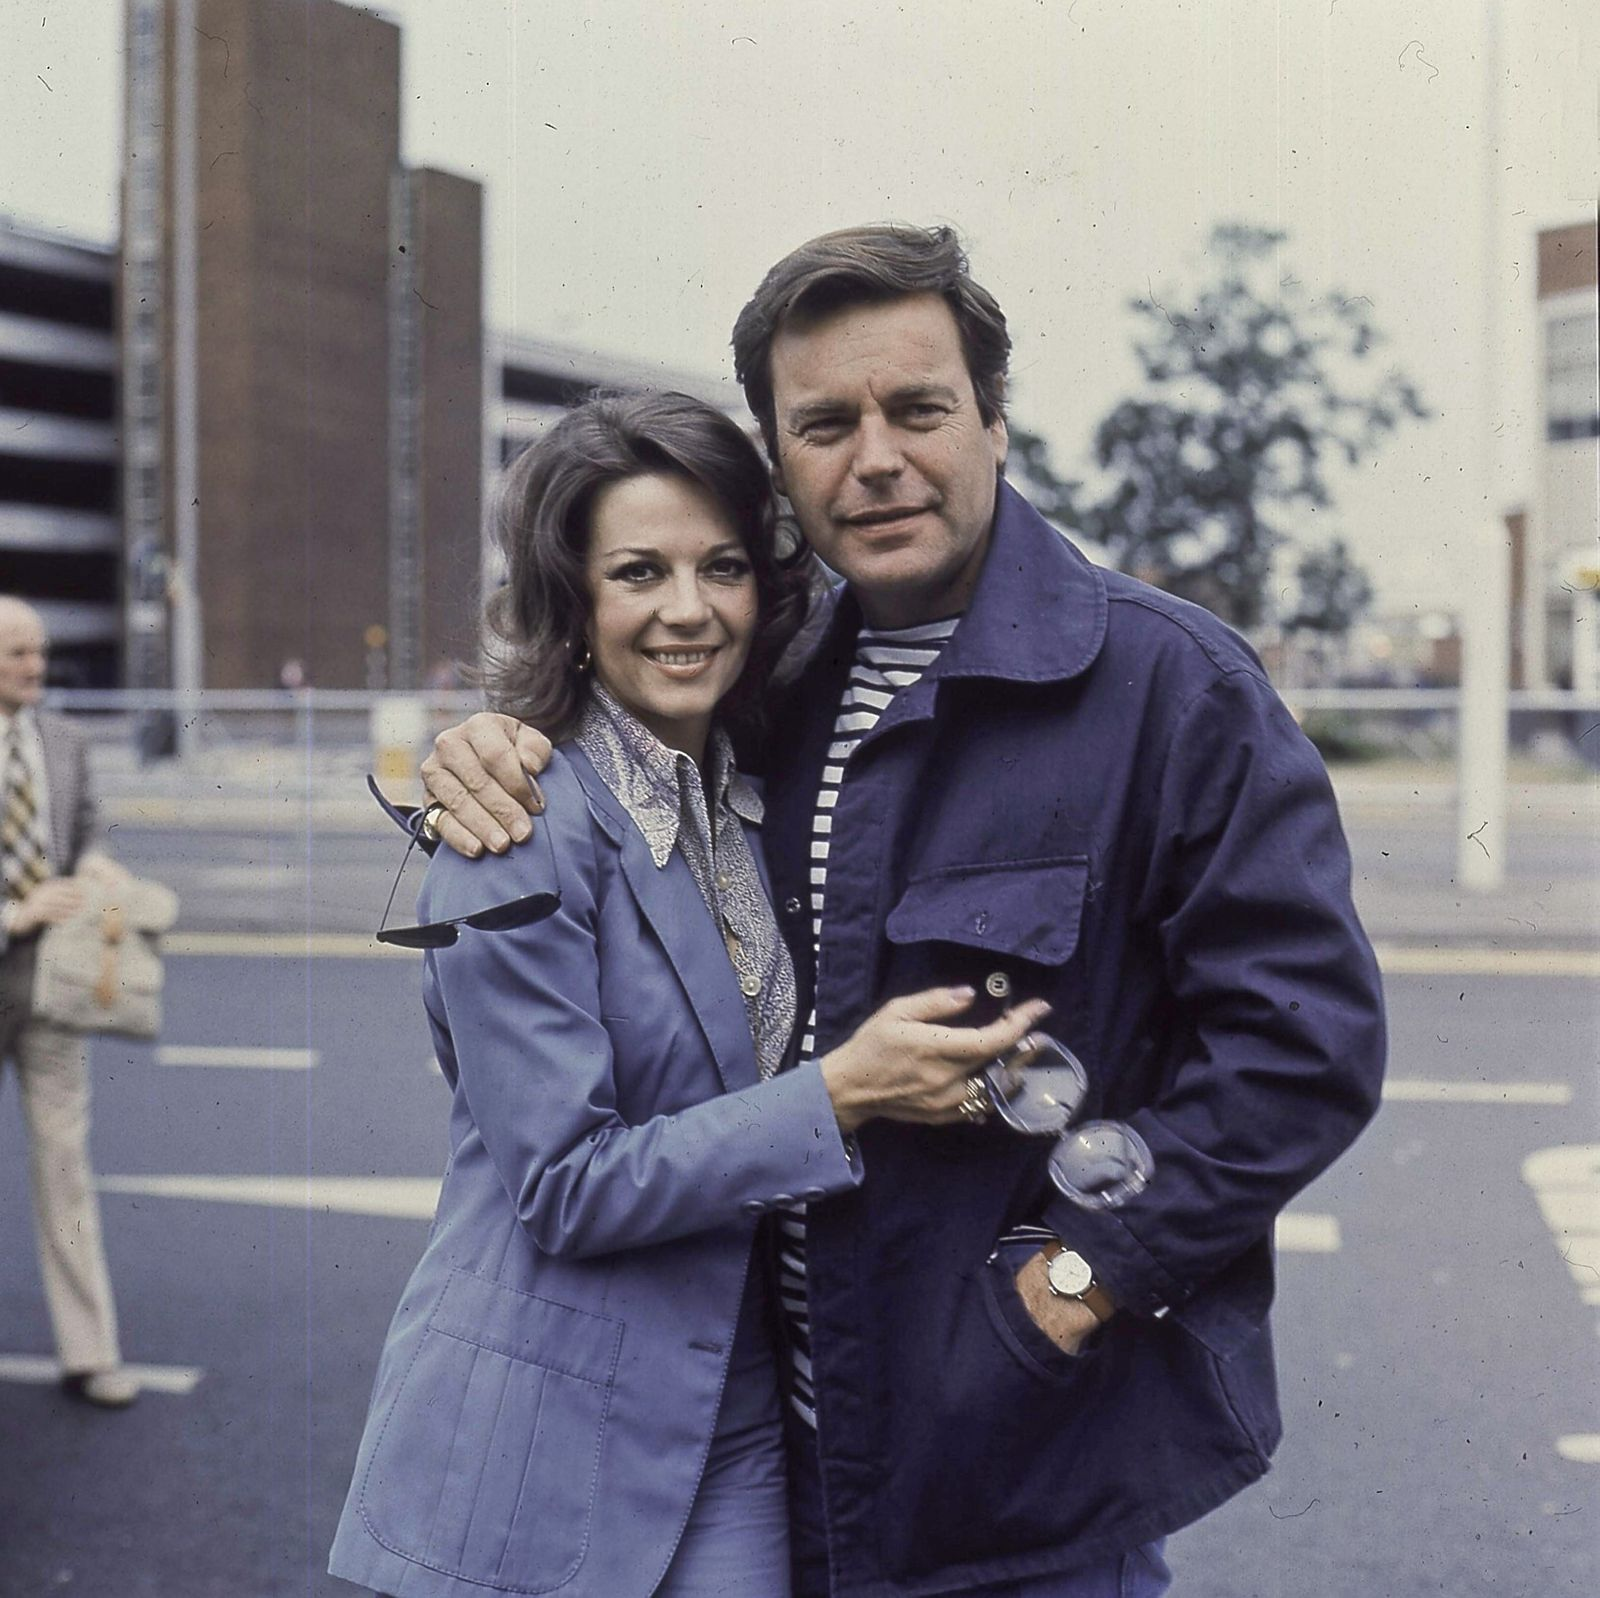 Natalie Wood and Robert Wagner 1976 PUBLICATIONxINxGERxSUIxAUTxONLY Copyright x352017GlobexPhotos